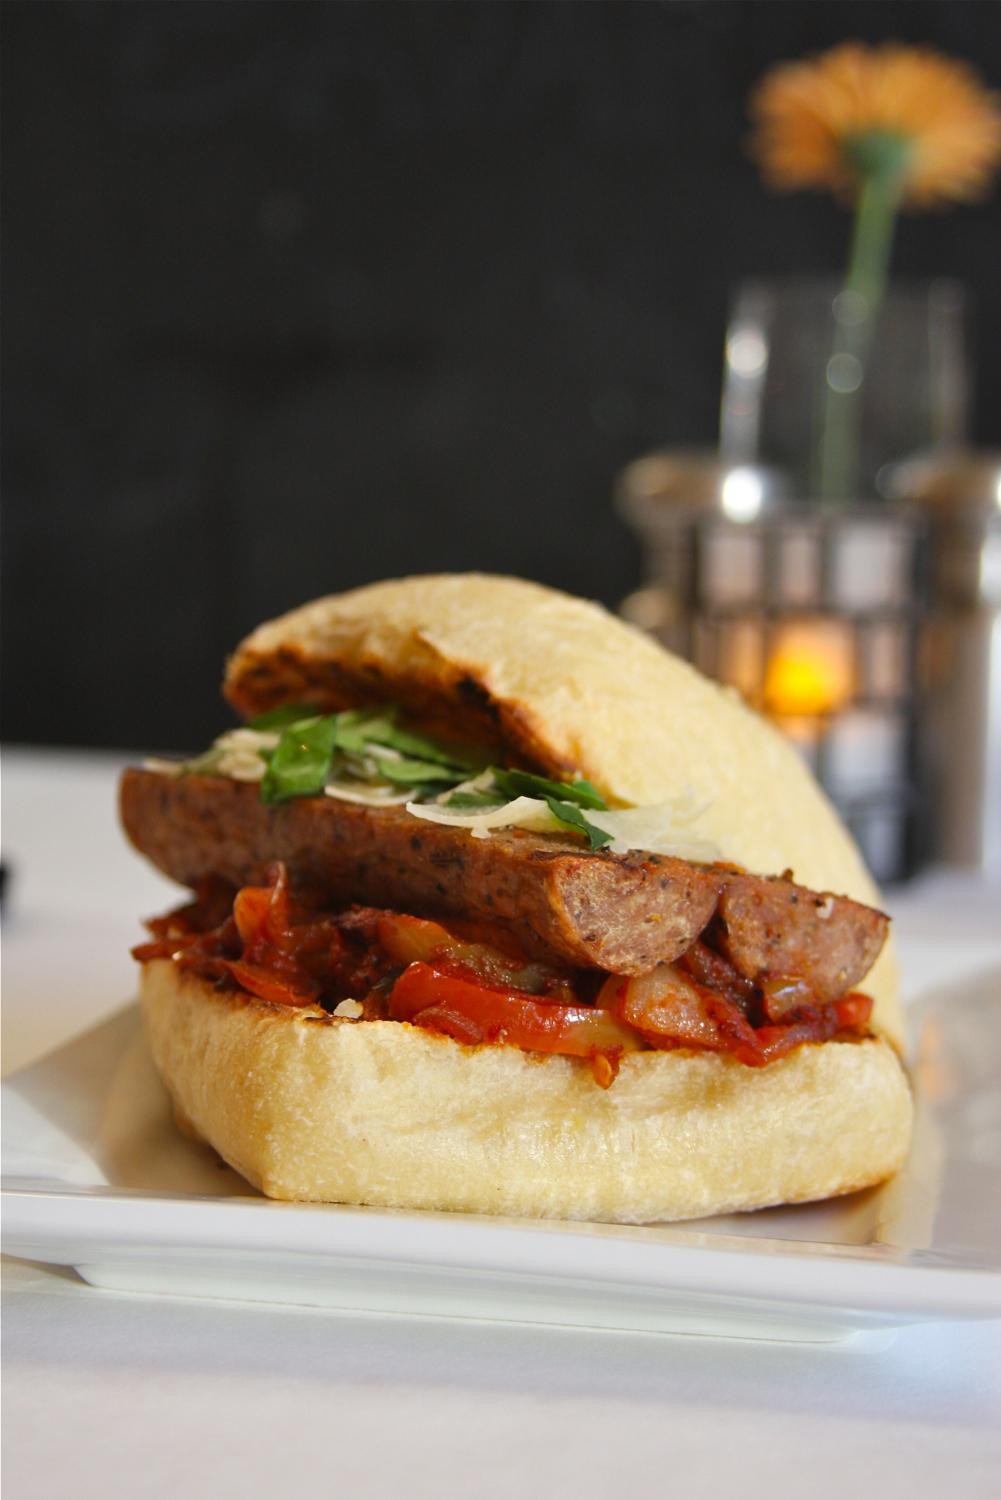 House-made sausage & peppers: grilled sausage, peppers, onions, romano cheese, and ciabatta / Image: Molly Paz / Published: 11.22.16